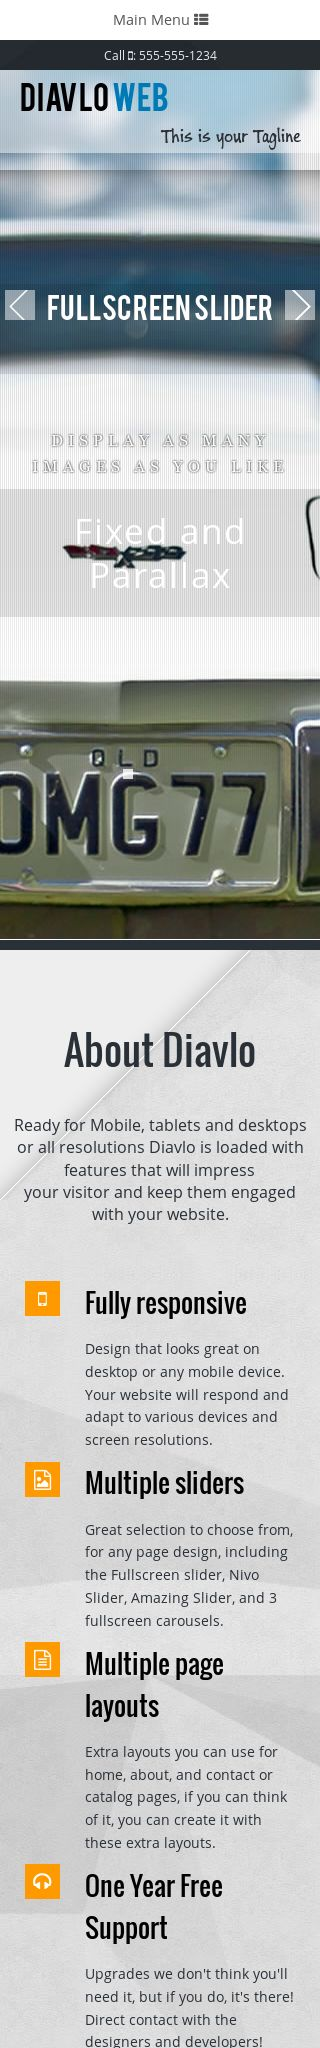 Mobile: Automobile Dreamweaver Template